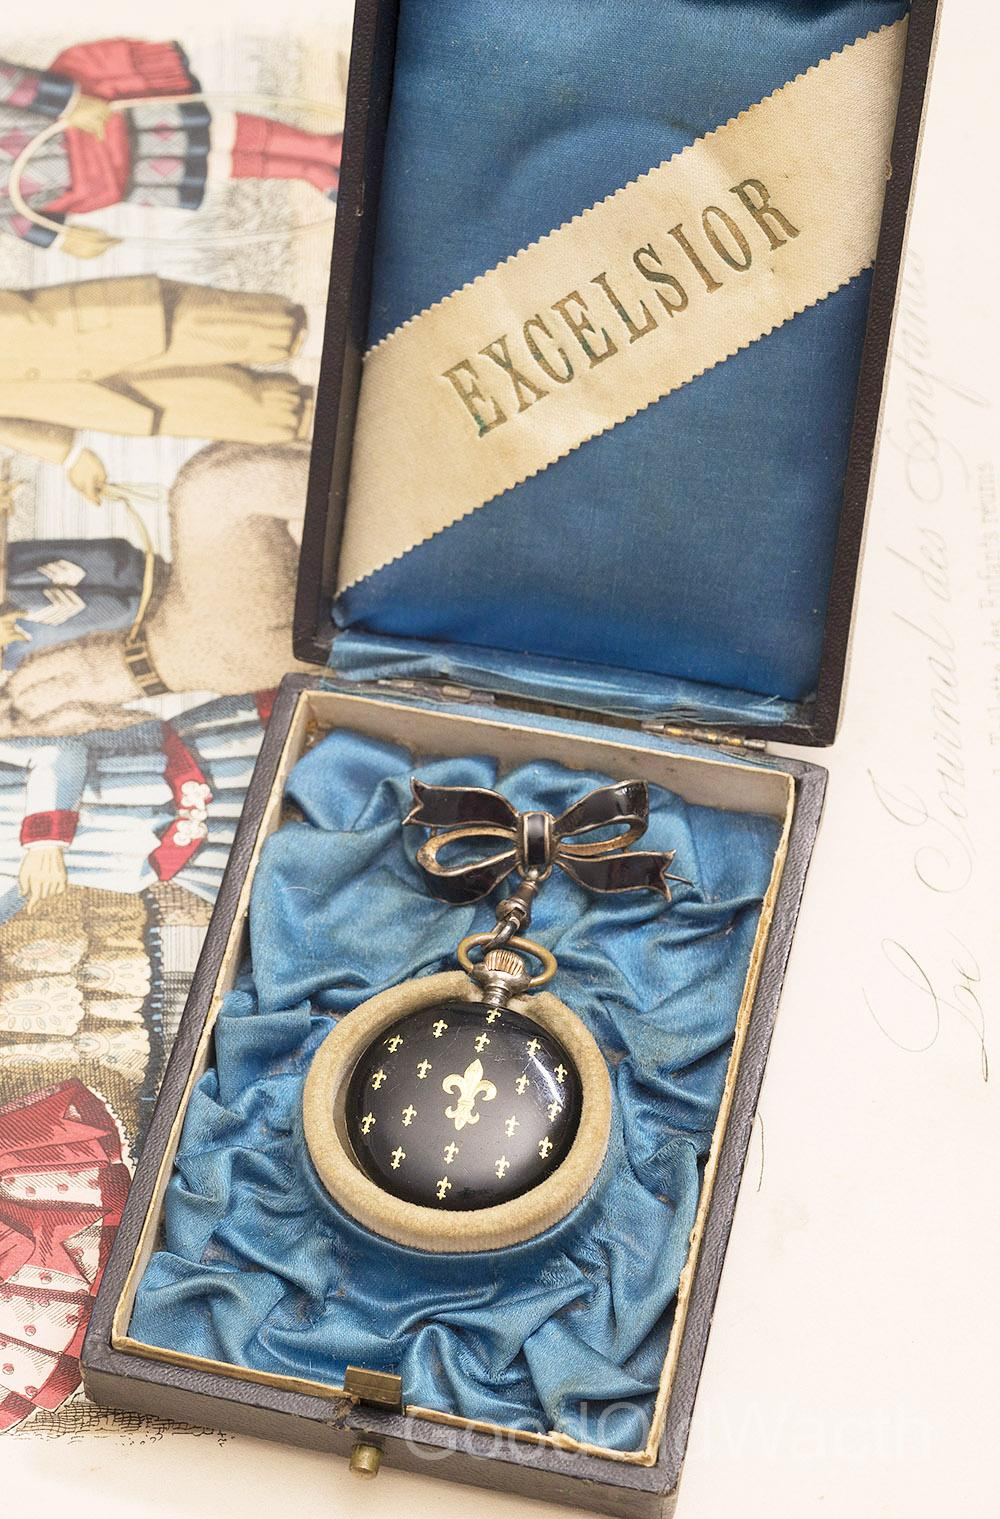 Antique Swiss Sterling SILVER & GOLDEN LILY ENAMEL Pocket or Pendant Lady Watch with Brooch in Original Box - Royal Memorabilia